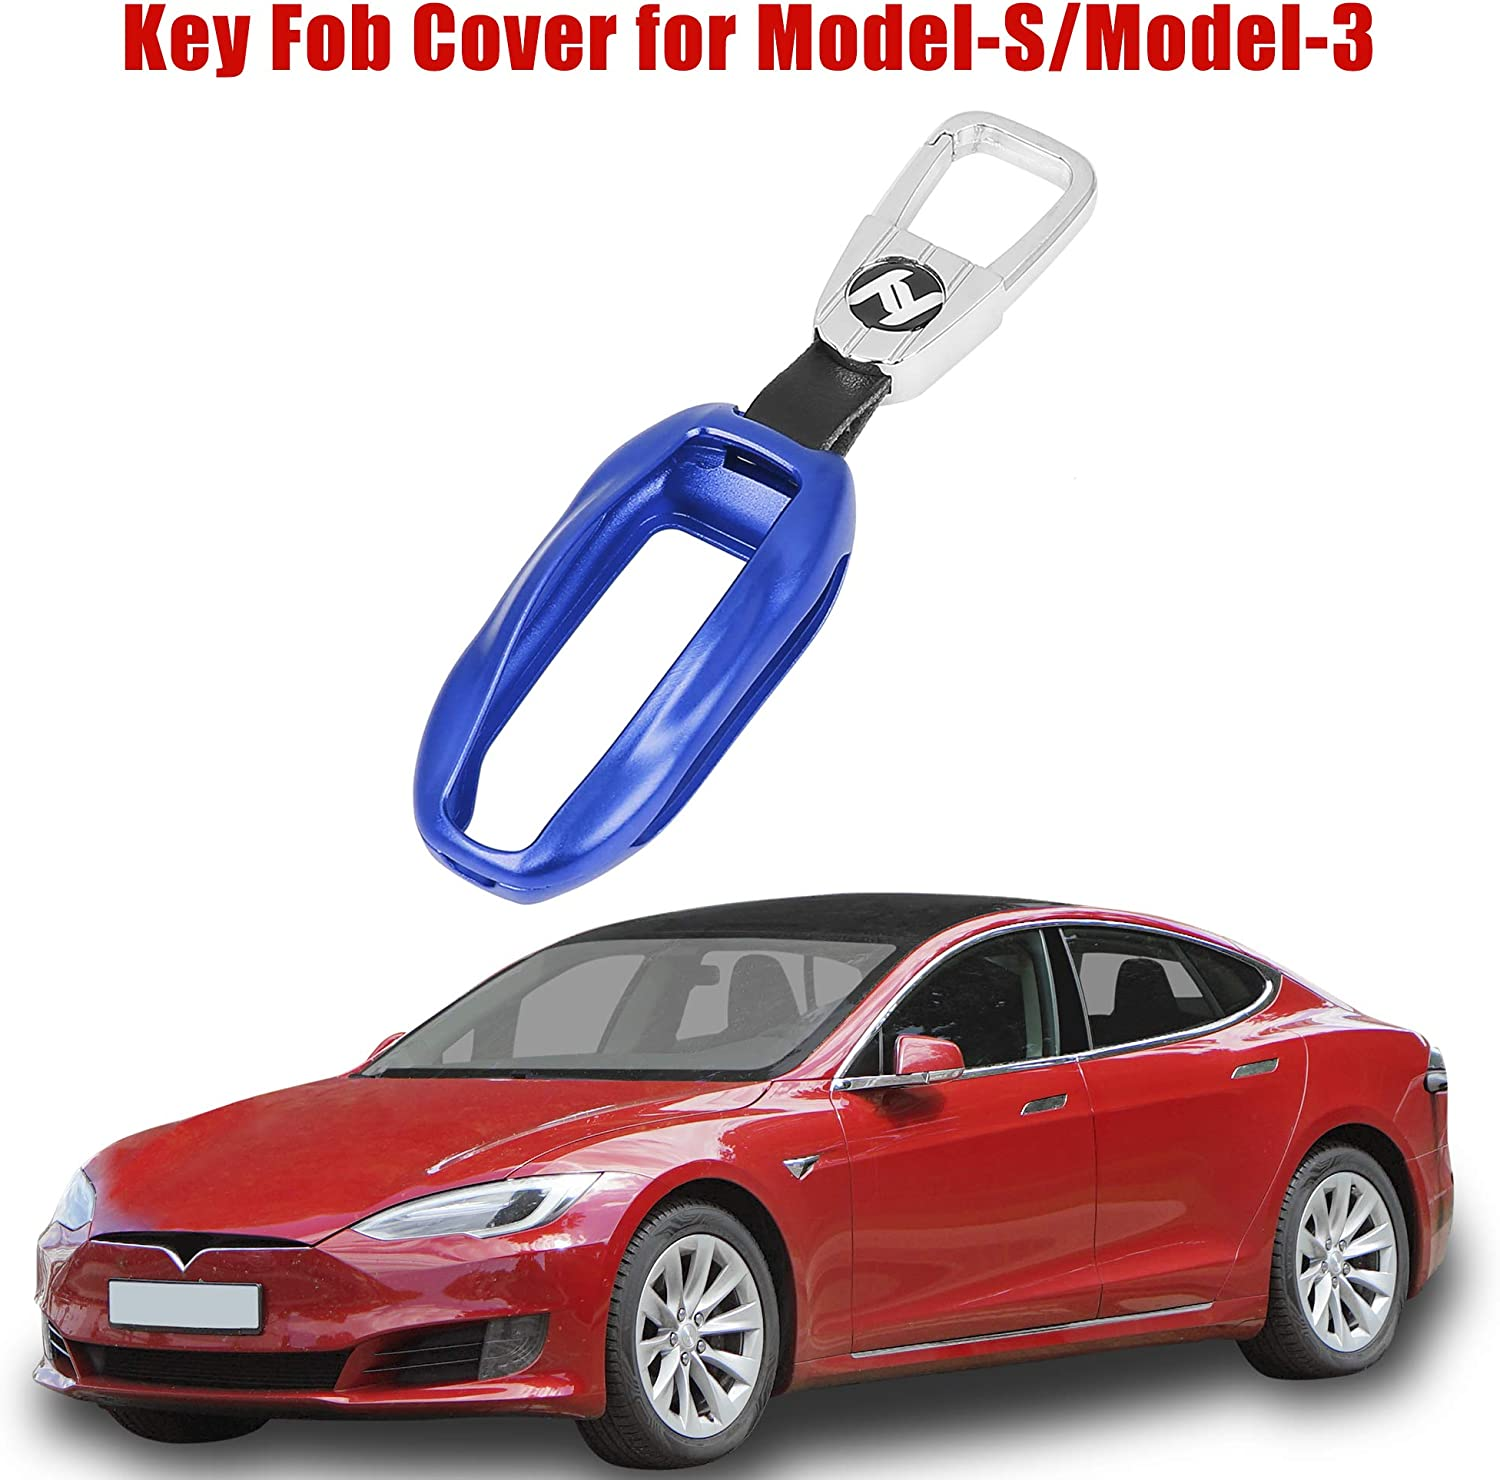 X AUTOHAUX Aluminum Alloy Car Key Fob Cover Flip Key Shell Protector Case Holder with Round Keychain for Tesla Model S /& Model 3 Red